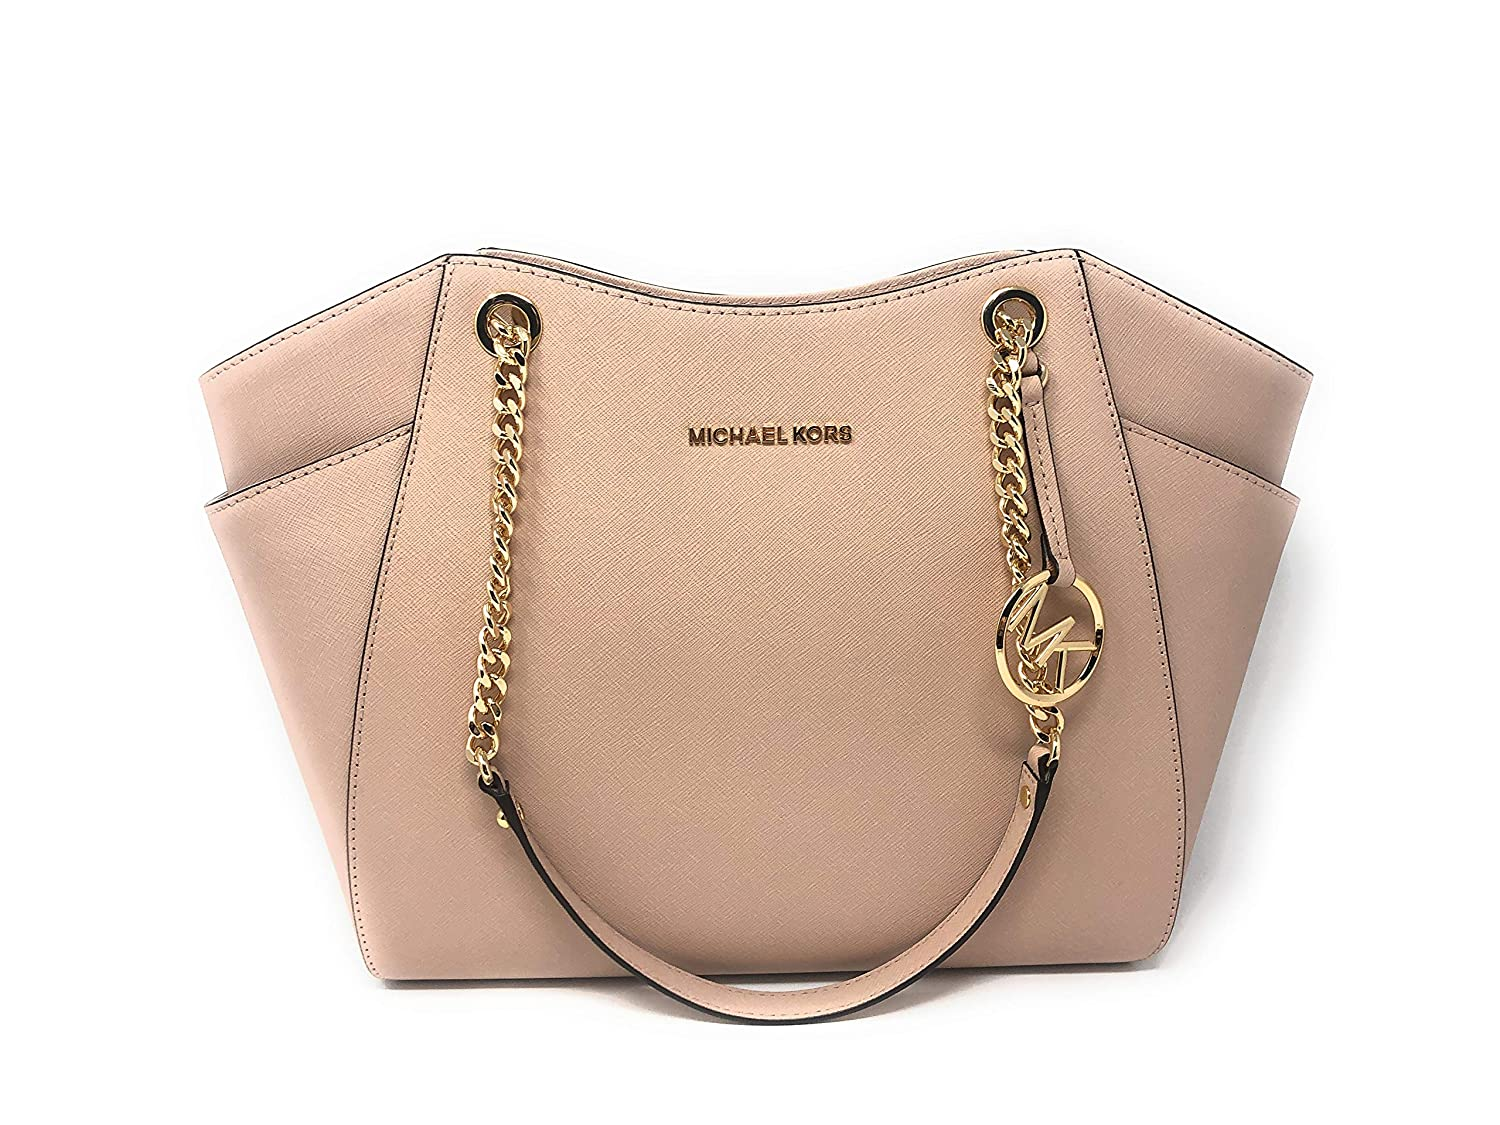 768f34bda05a Amazon.com: Michael Kors Women's Jet Set Travel - Large Chain Shoulder Tote:  Michael Kors: Shoes